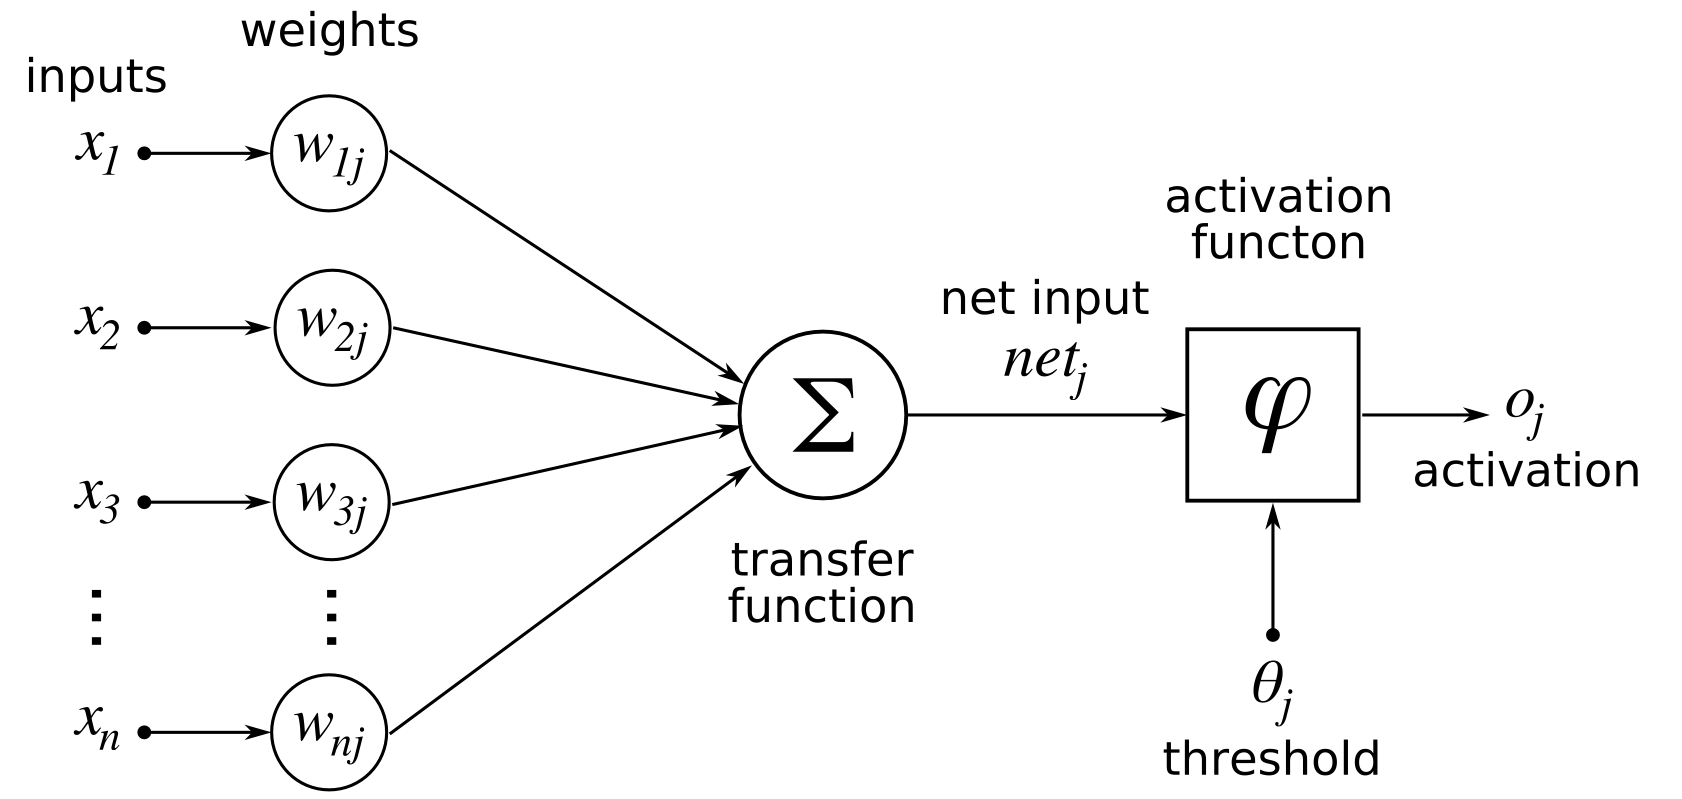 ArtificialNeuronModel_english.png